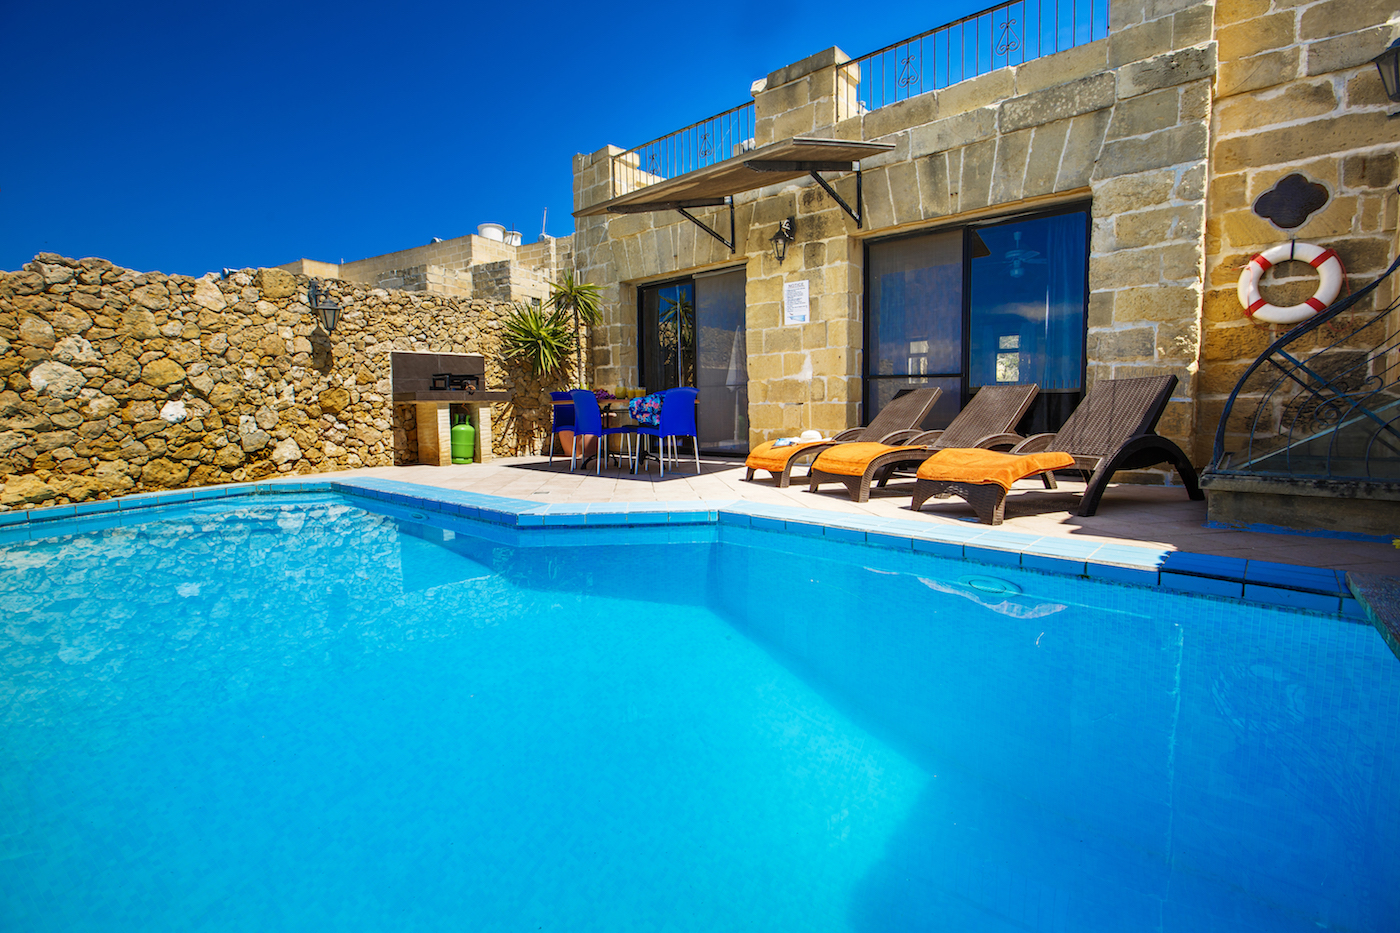 The private pool terrace